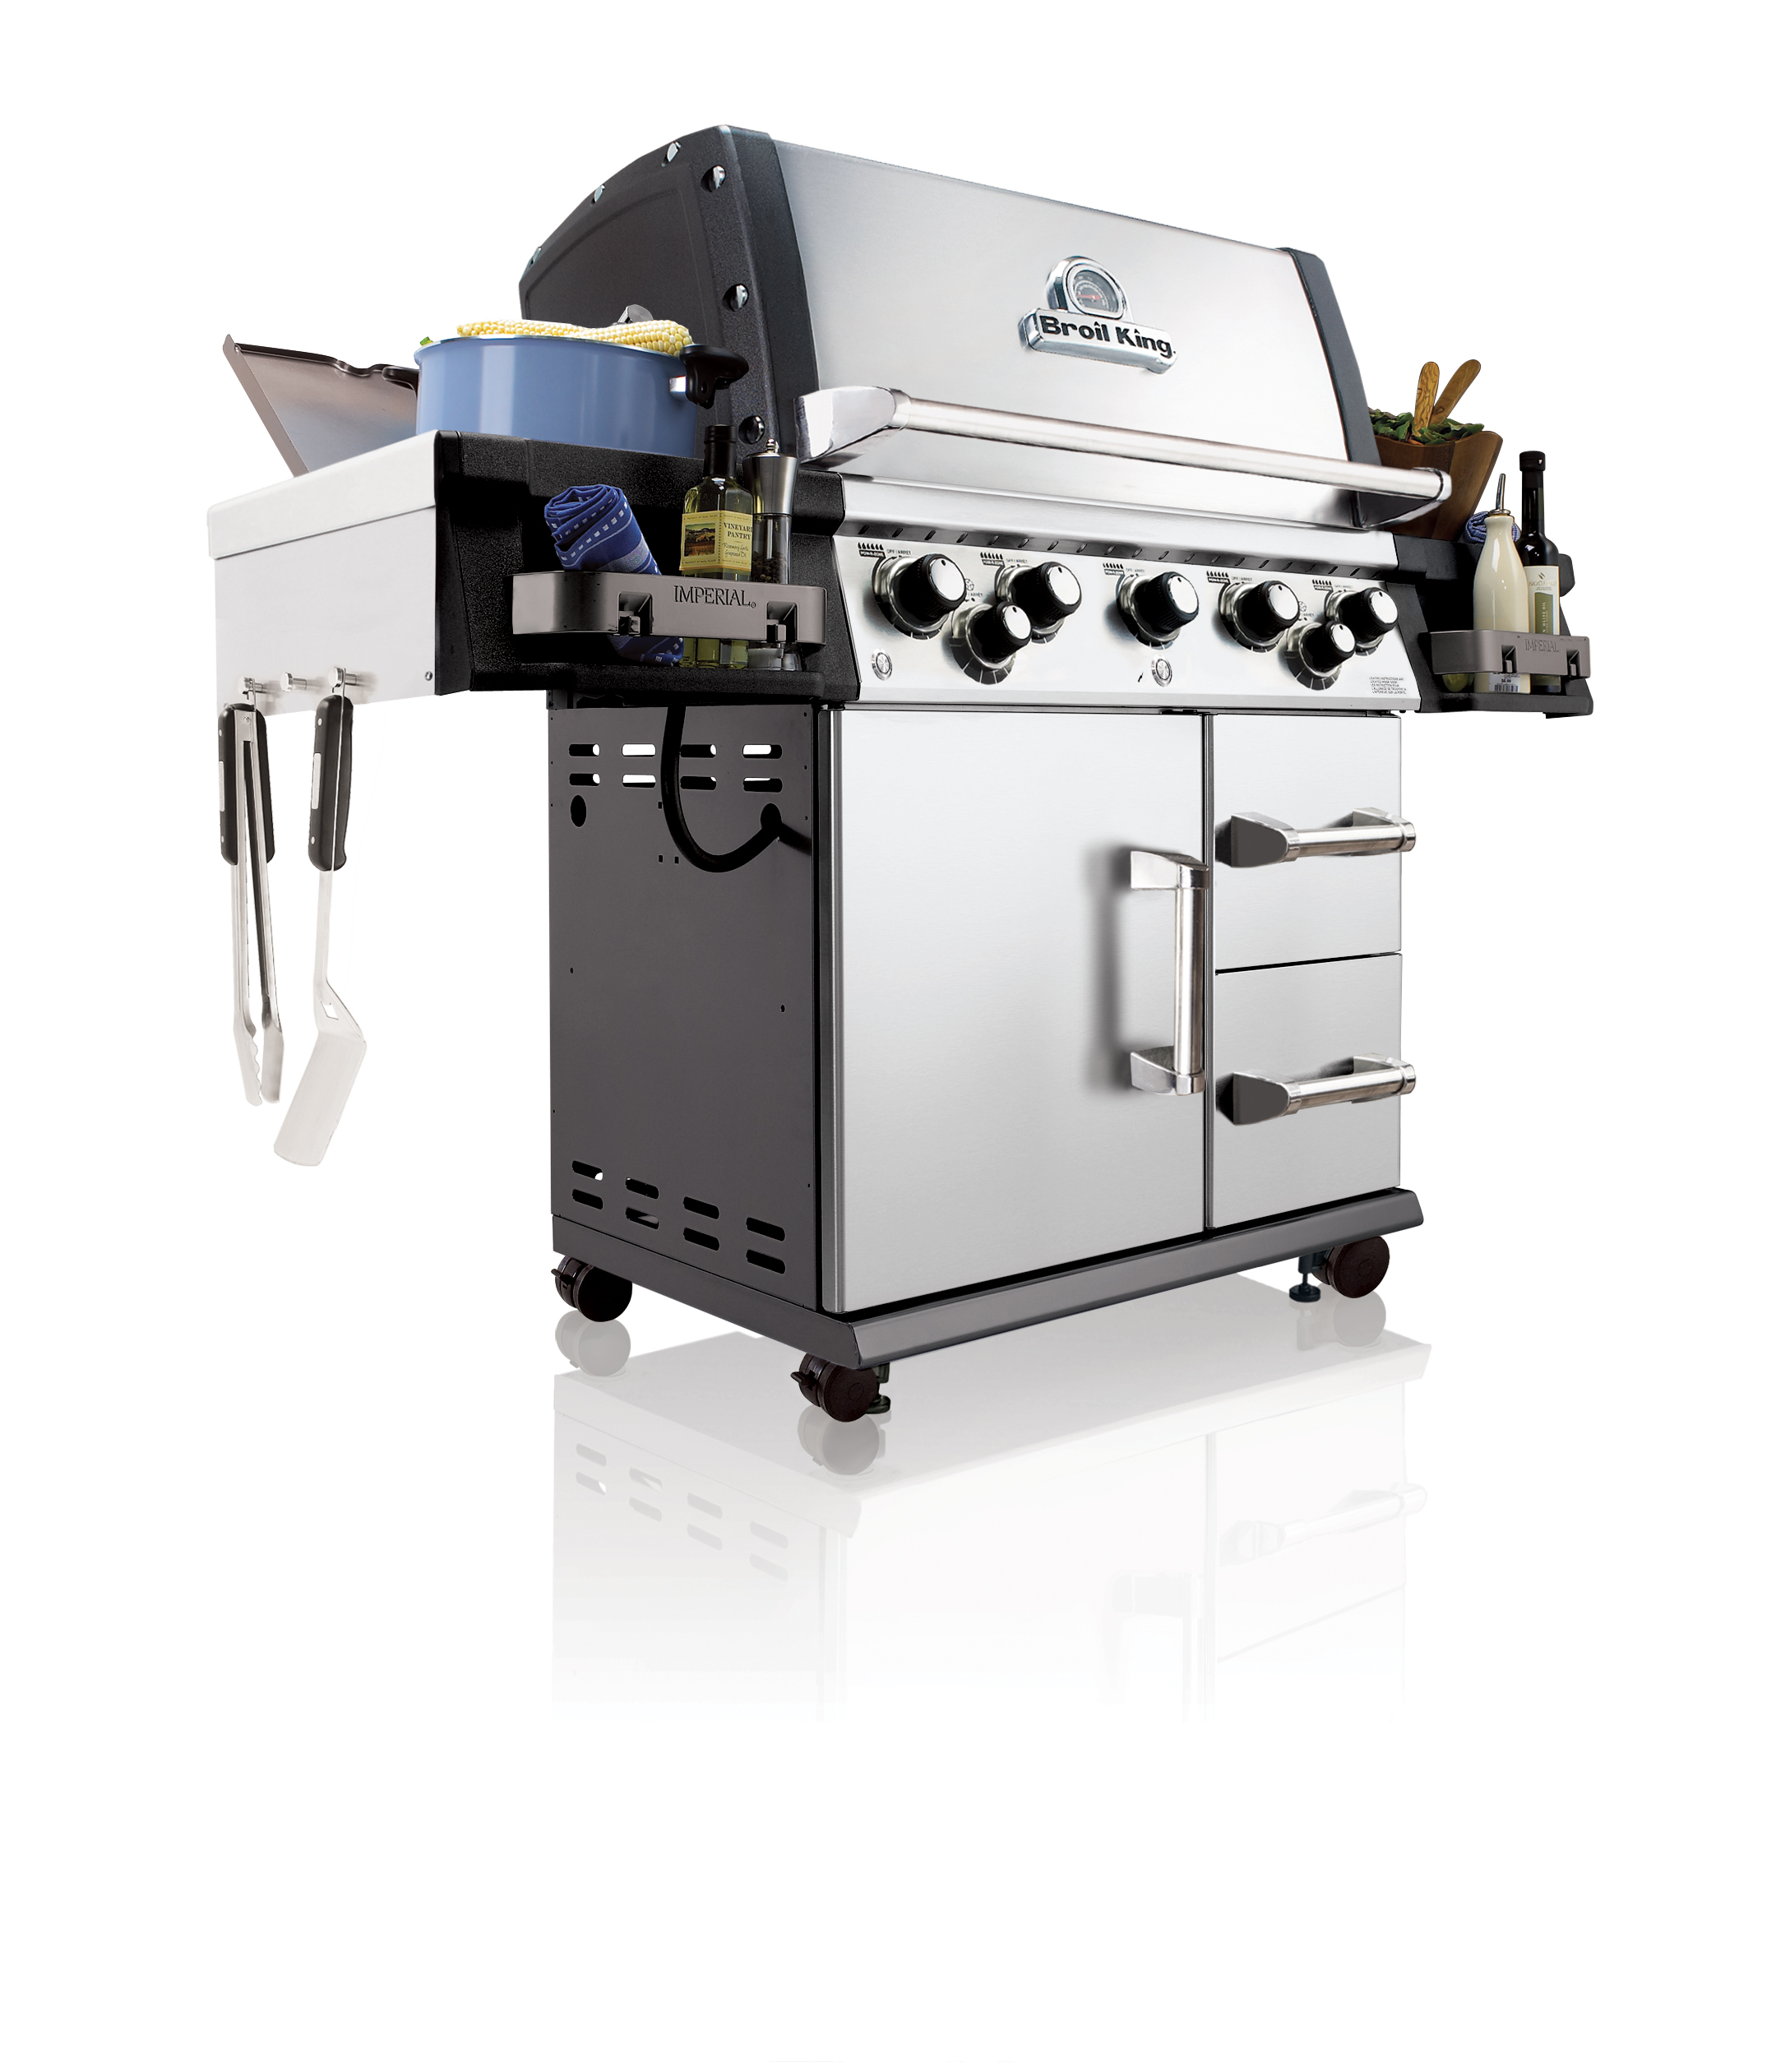 Broil King Imperial 590 Barbecue Grill